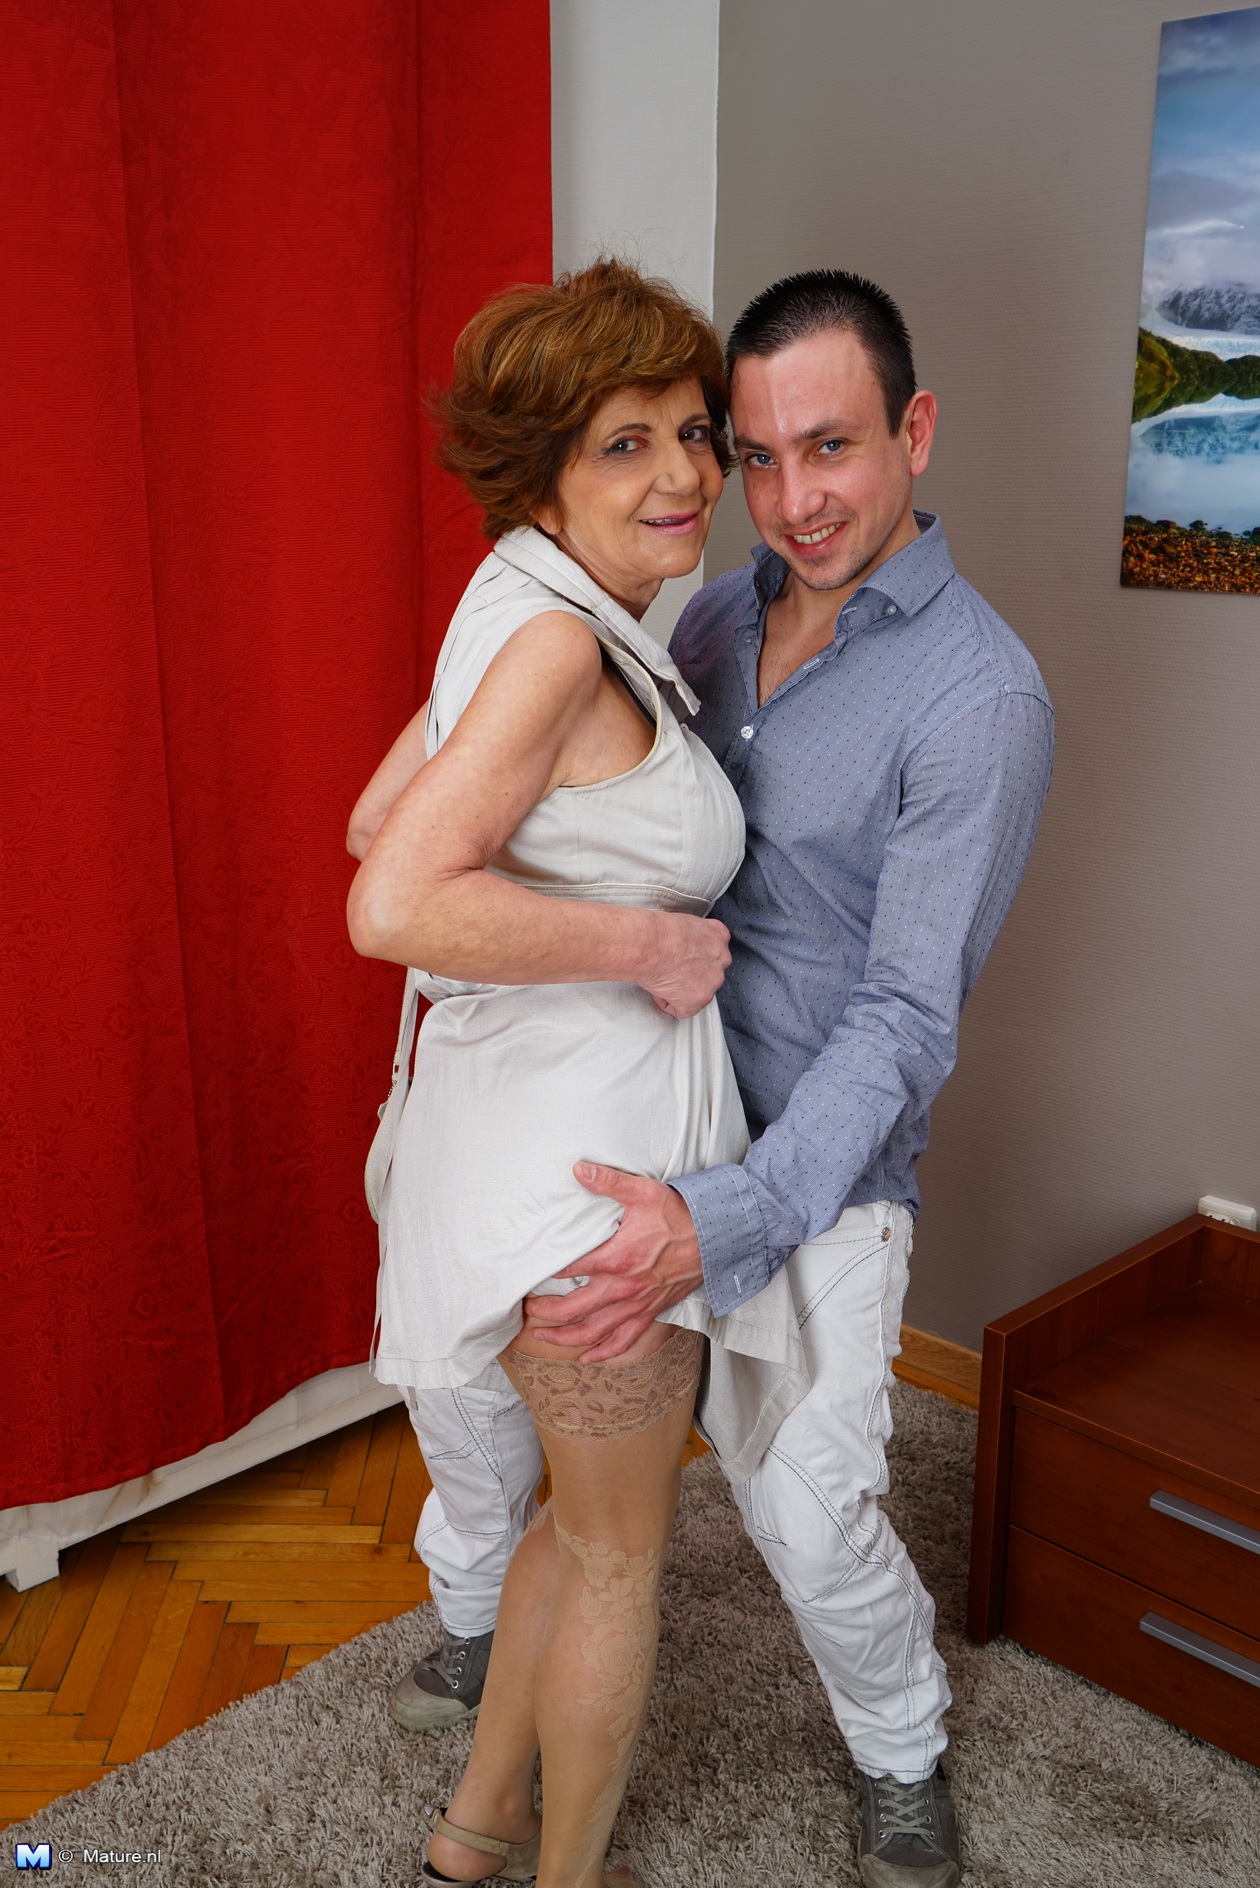 Mature grannies and boys